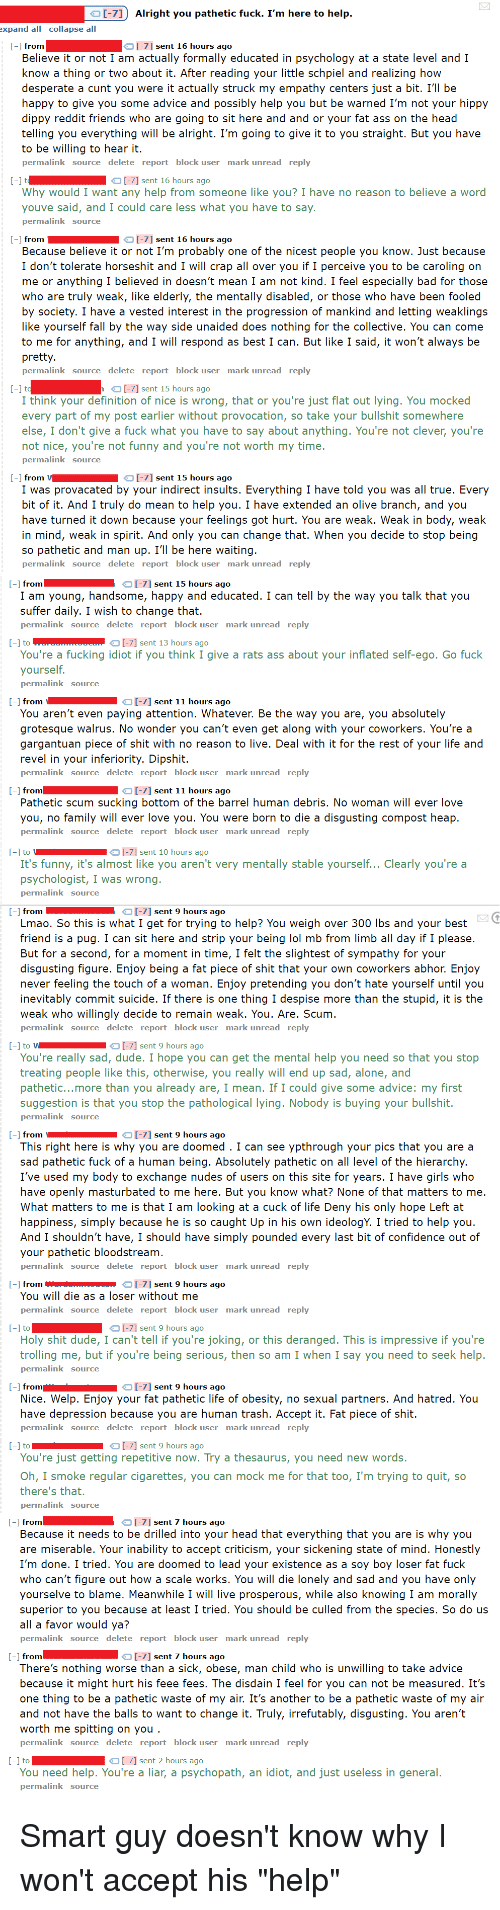 Advice, Being Alone, and Ass: o [-7Alright you pathetic fuck. I'm here to help  I-71 sent 16 hours ago  Believe it or not I am actually formally educated in psychology at a state level and I  know a thing or two about it. After reading your little schpiel and realizing how  desperate a cunt you were it actually struck my empathy centers just a bit. I'll be  happy to give you some advice and possibly help you but be warned I'm not your hippy  dippy reddit friends who are going to sit here and and or your fat ass on the head  telling you everything will be alright. I'm going to give it to you straight. But you have  permalink source delete report block user mark unread reply  Why  from someone like you  reason to beli  could care  from-7] sent 16 hours ago  t people you know. Just because  I don't tolerate horseshit and I will crap all over you if I perceive you to be caroling on  me or anything I believed in doesn't mean I am not kind. I feel especially bad for those  who are truly weak, like elderly, the mentally disabled, or those who have been fooled  by society. I have a vested interest in the progression of mankind and letting weaklings  like yourself fall by the way side unaided does nothing for the collective. You can come  to me for anything, and I will respond as best I can. But like I said, it won't always be  permalink source delete report block user mark unread reply  I-7] sent 15 hours ago  I think your definition of nice is wrong, that or you're just flat out lying. You mocked  every part of my post earlier without provocation, so take your bullshit somewhere  else, I don't give a fuck what you have to say about anything. You're not clever, you're  not nice, you're not funny and you're not worth my time  -l from VI-71 sent 15 hours ago  I was provacated by your indirect insults. Everything I have told you was all true. Every  bit of it. And I truly do mean to help you. I have extended an olive branch, and you  have turned it down because your feelings g